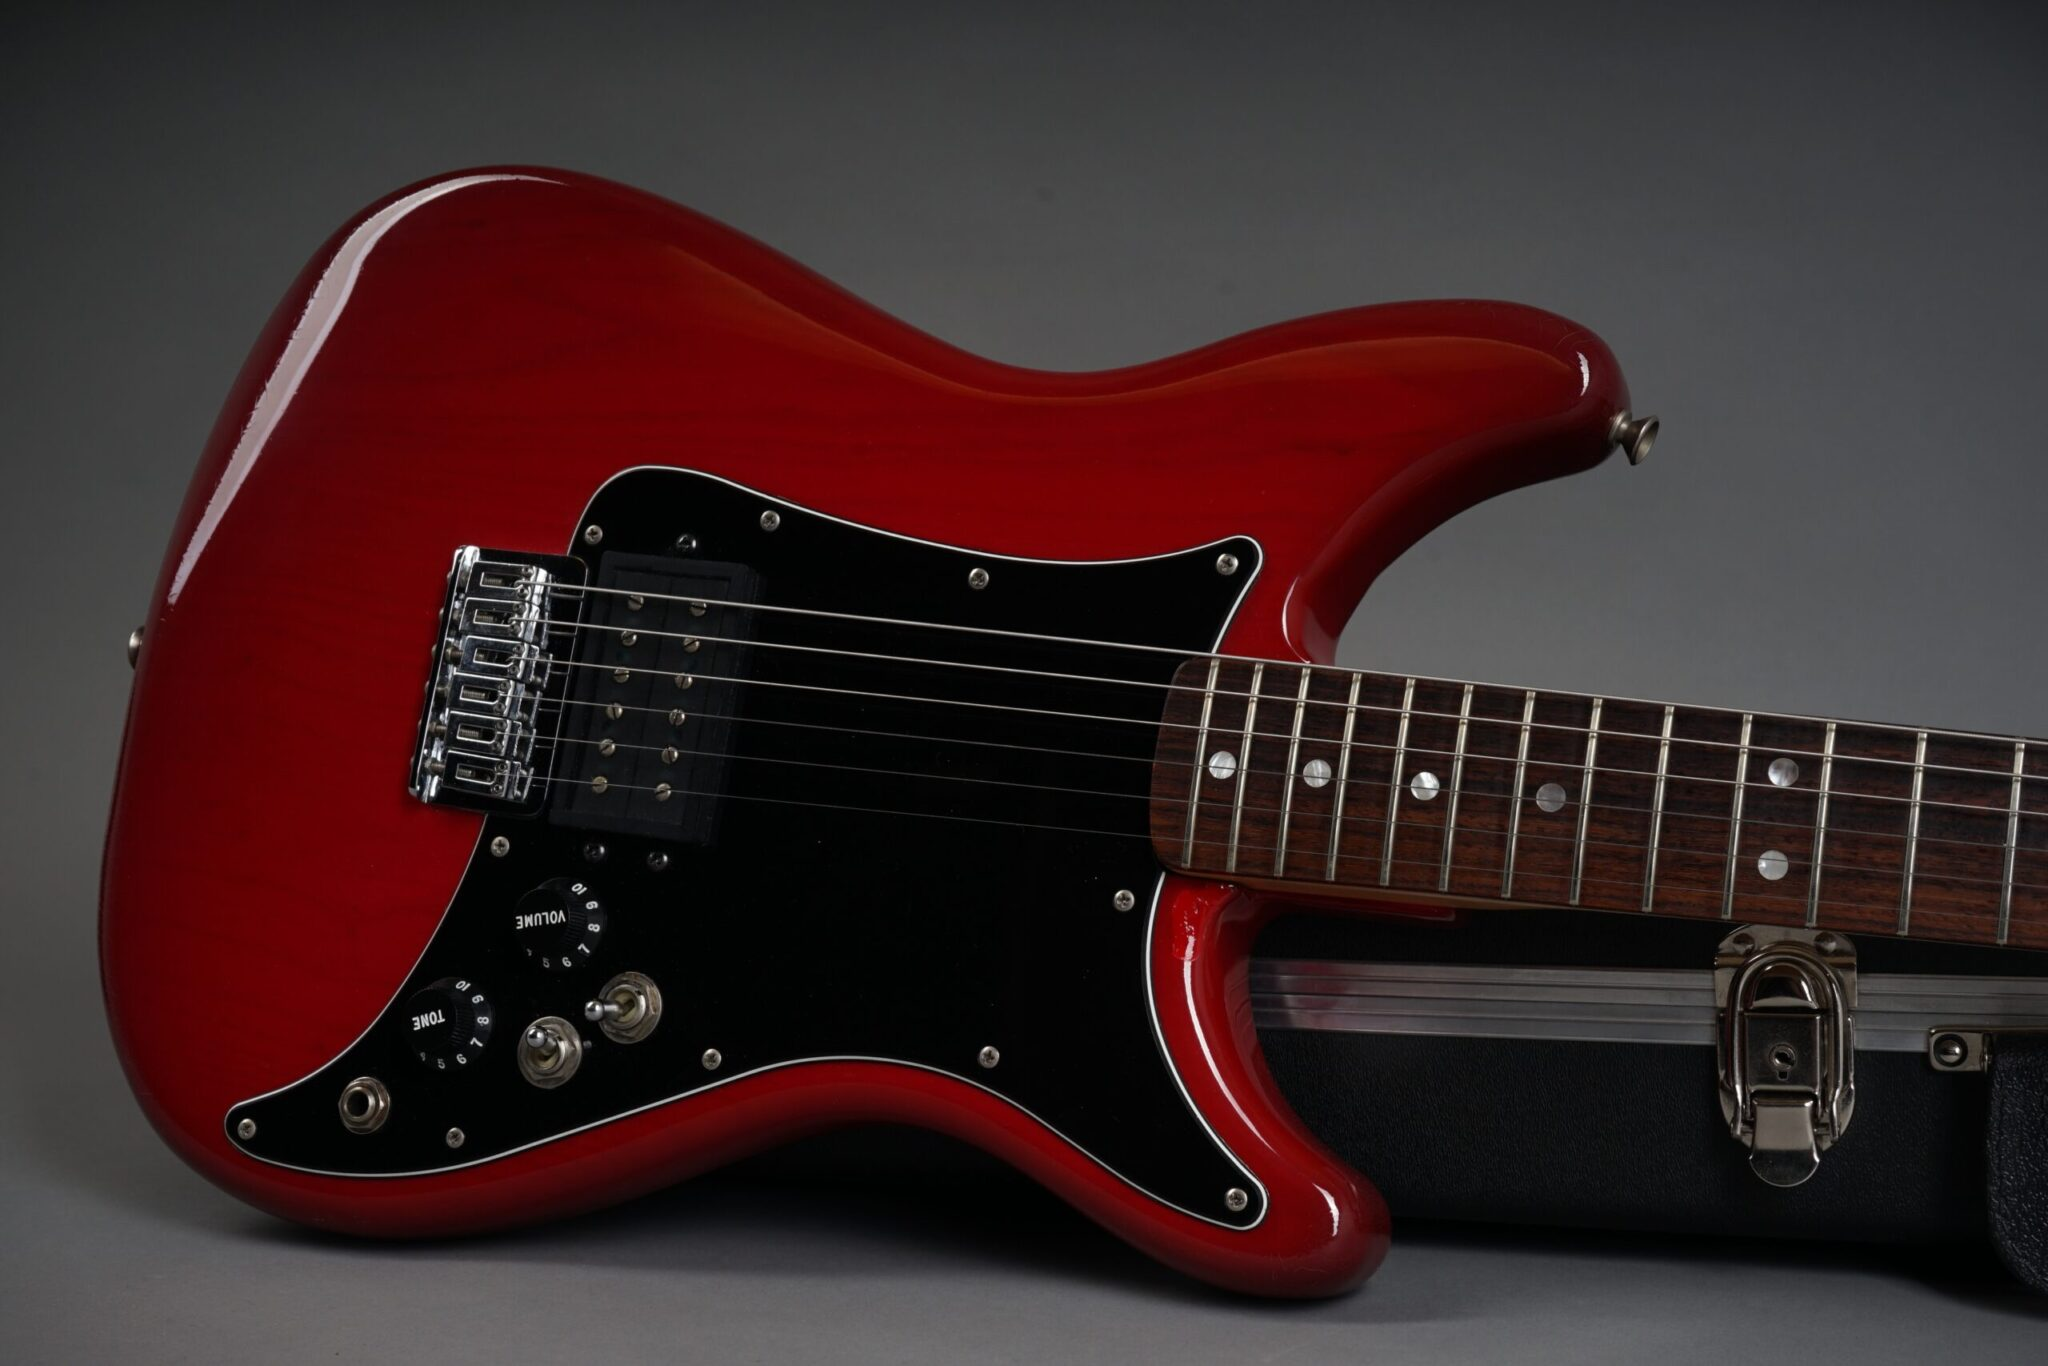 https://guitarpoint.de/app/uploads/products/1981-fender-lead-i-red/1981-Fender-Lead-I-Winered-E105612-19-scaled-2048x1366.jpg